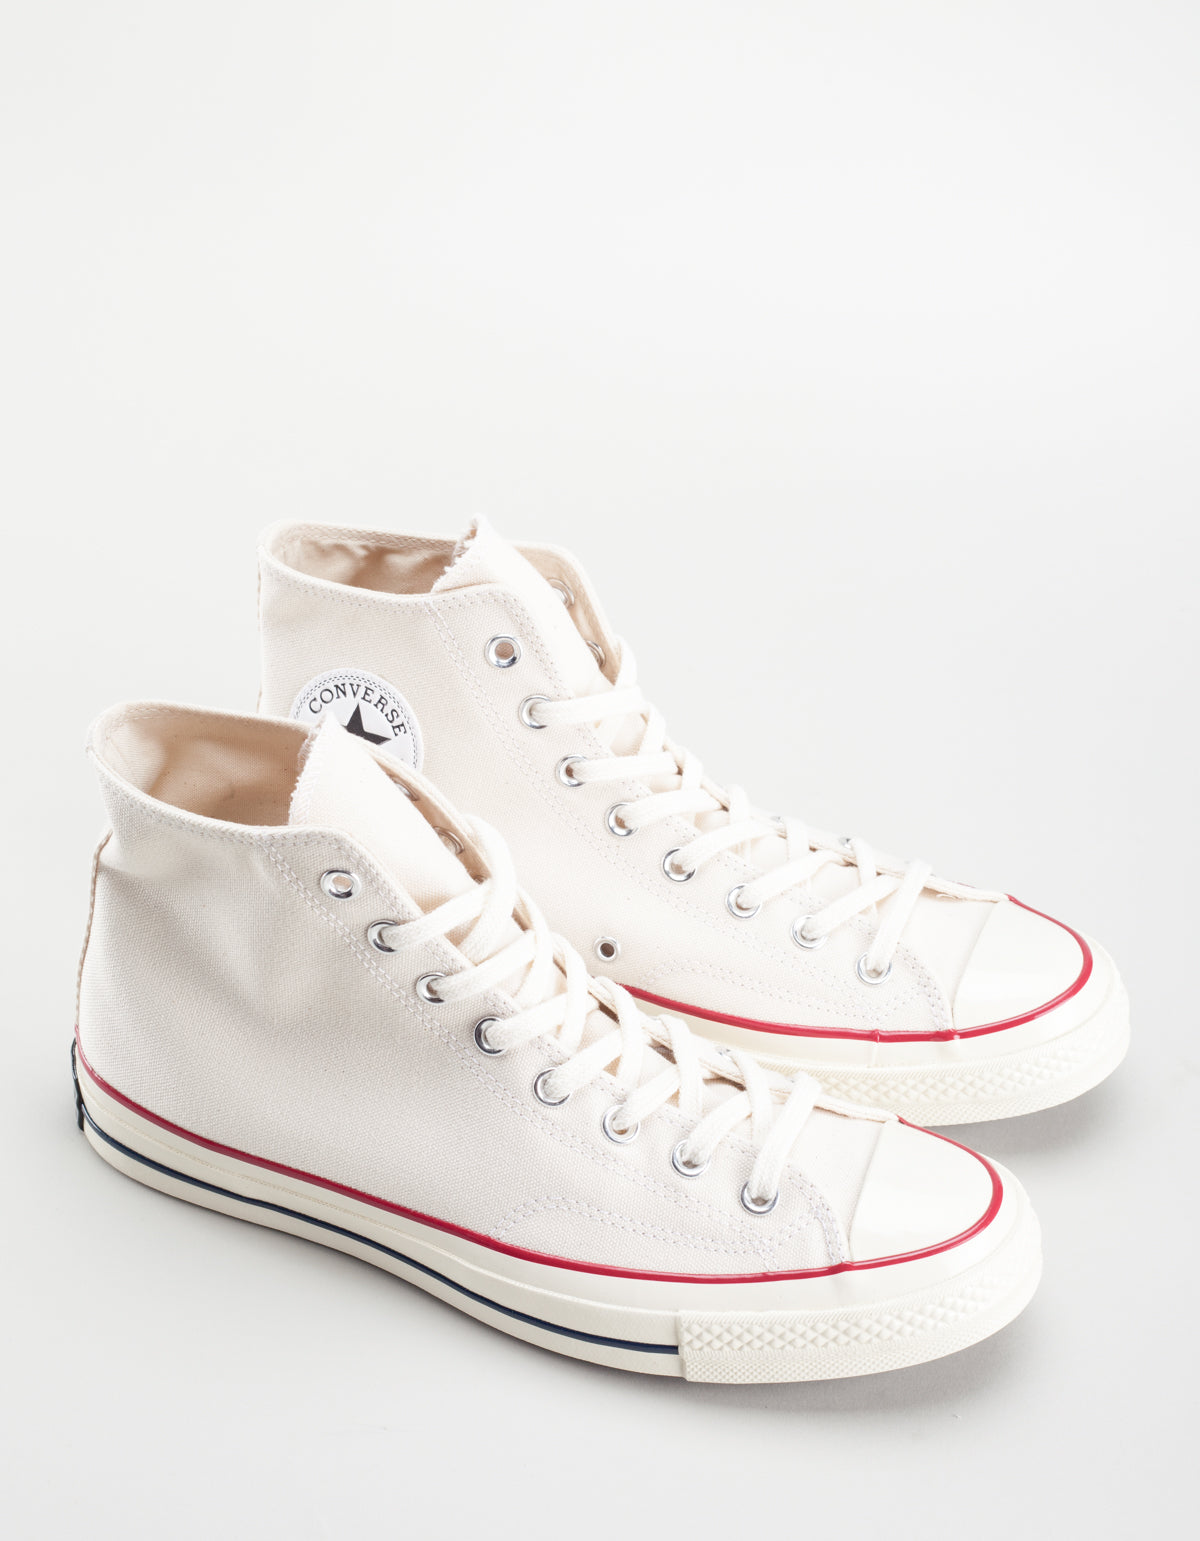 Converse Men's Chuck 70 High Top Parchment Egret White